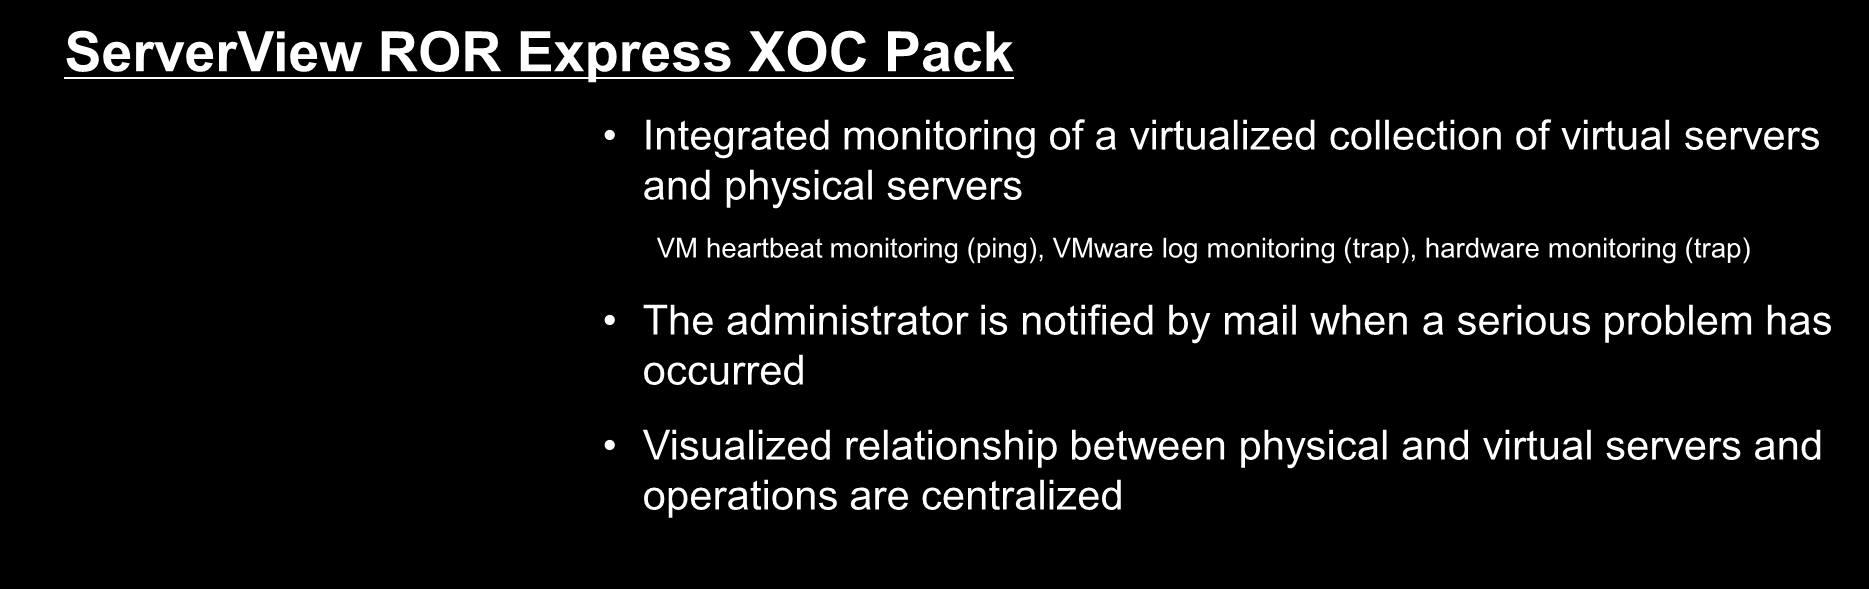 What ServerView ROR Express XOC Pack can be Used For ServerView ROR Express XOC Pack Infrastructure monitoring Server management Integrated monitoring of a virtualized collection of virtual servers